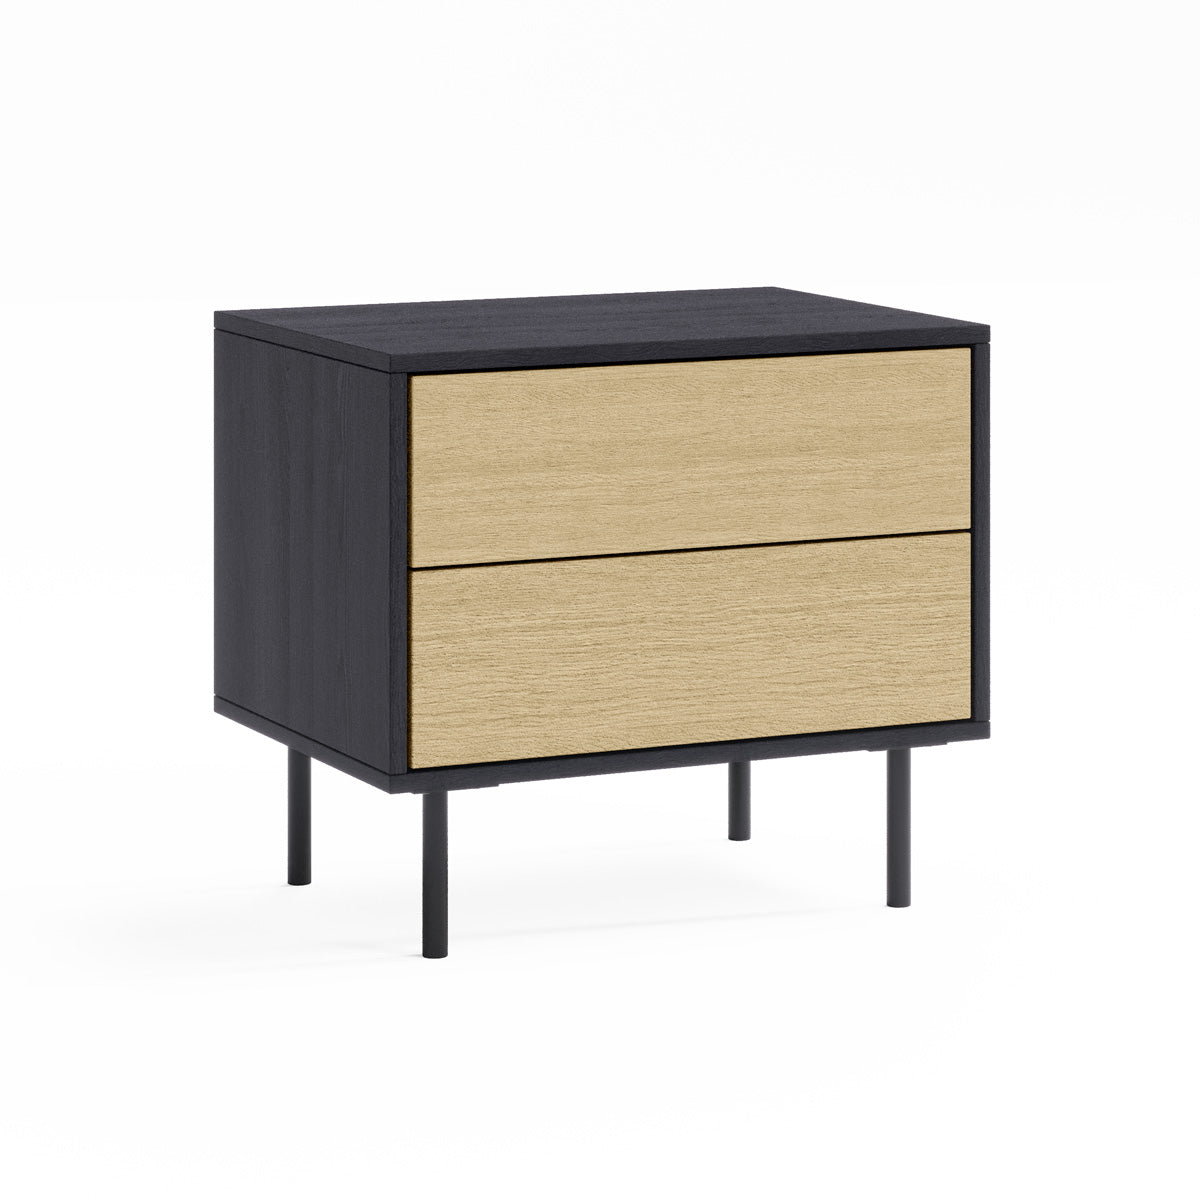 Black Wooden Bedside Table with Drawers (Harvey Collection)